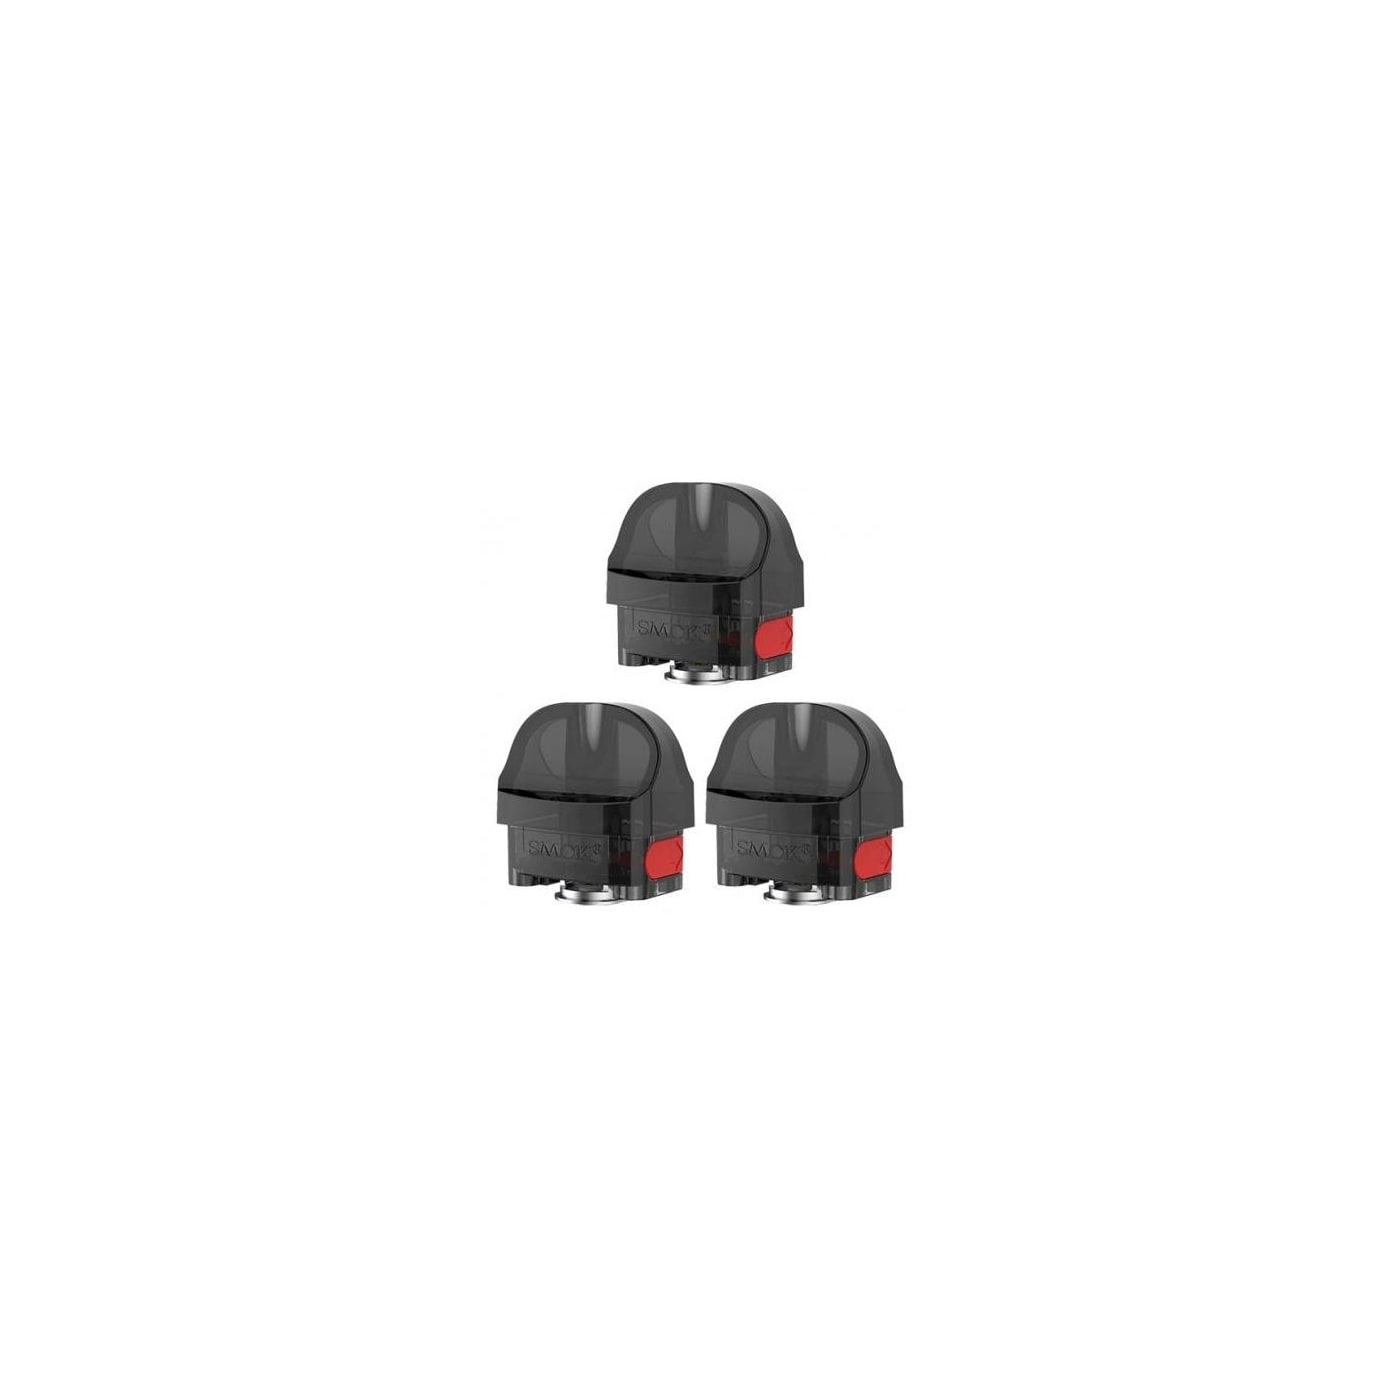 Smok Nord 4 RPM 2 Replacement Pod - 3 Pack